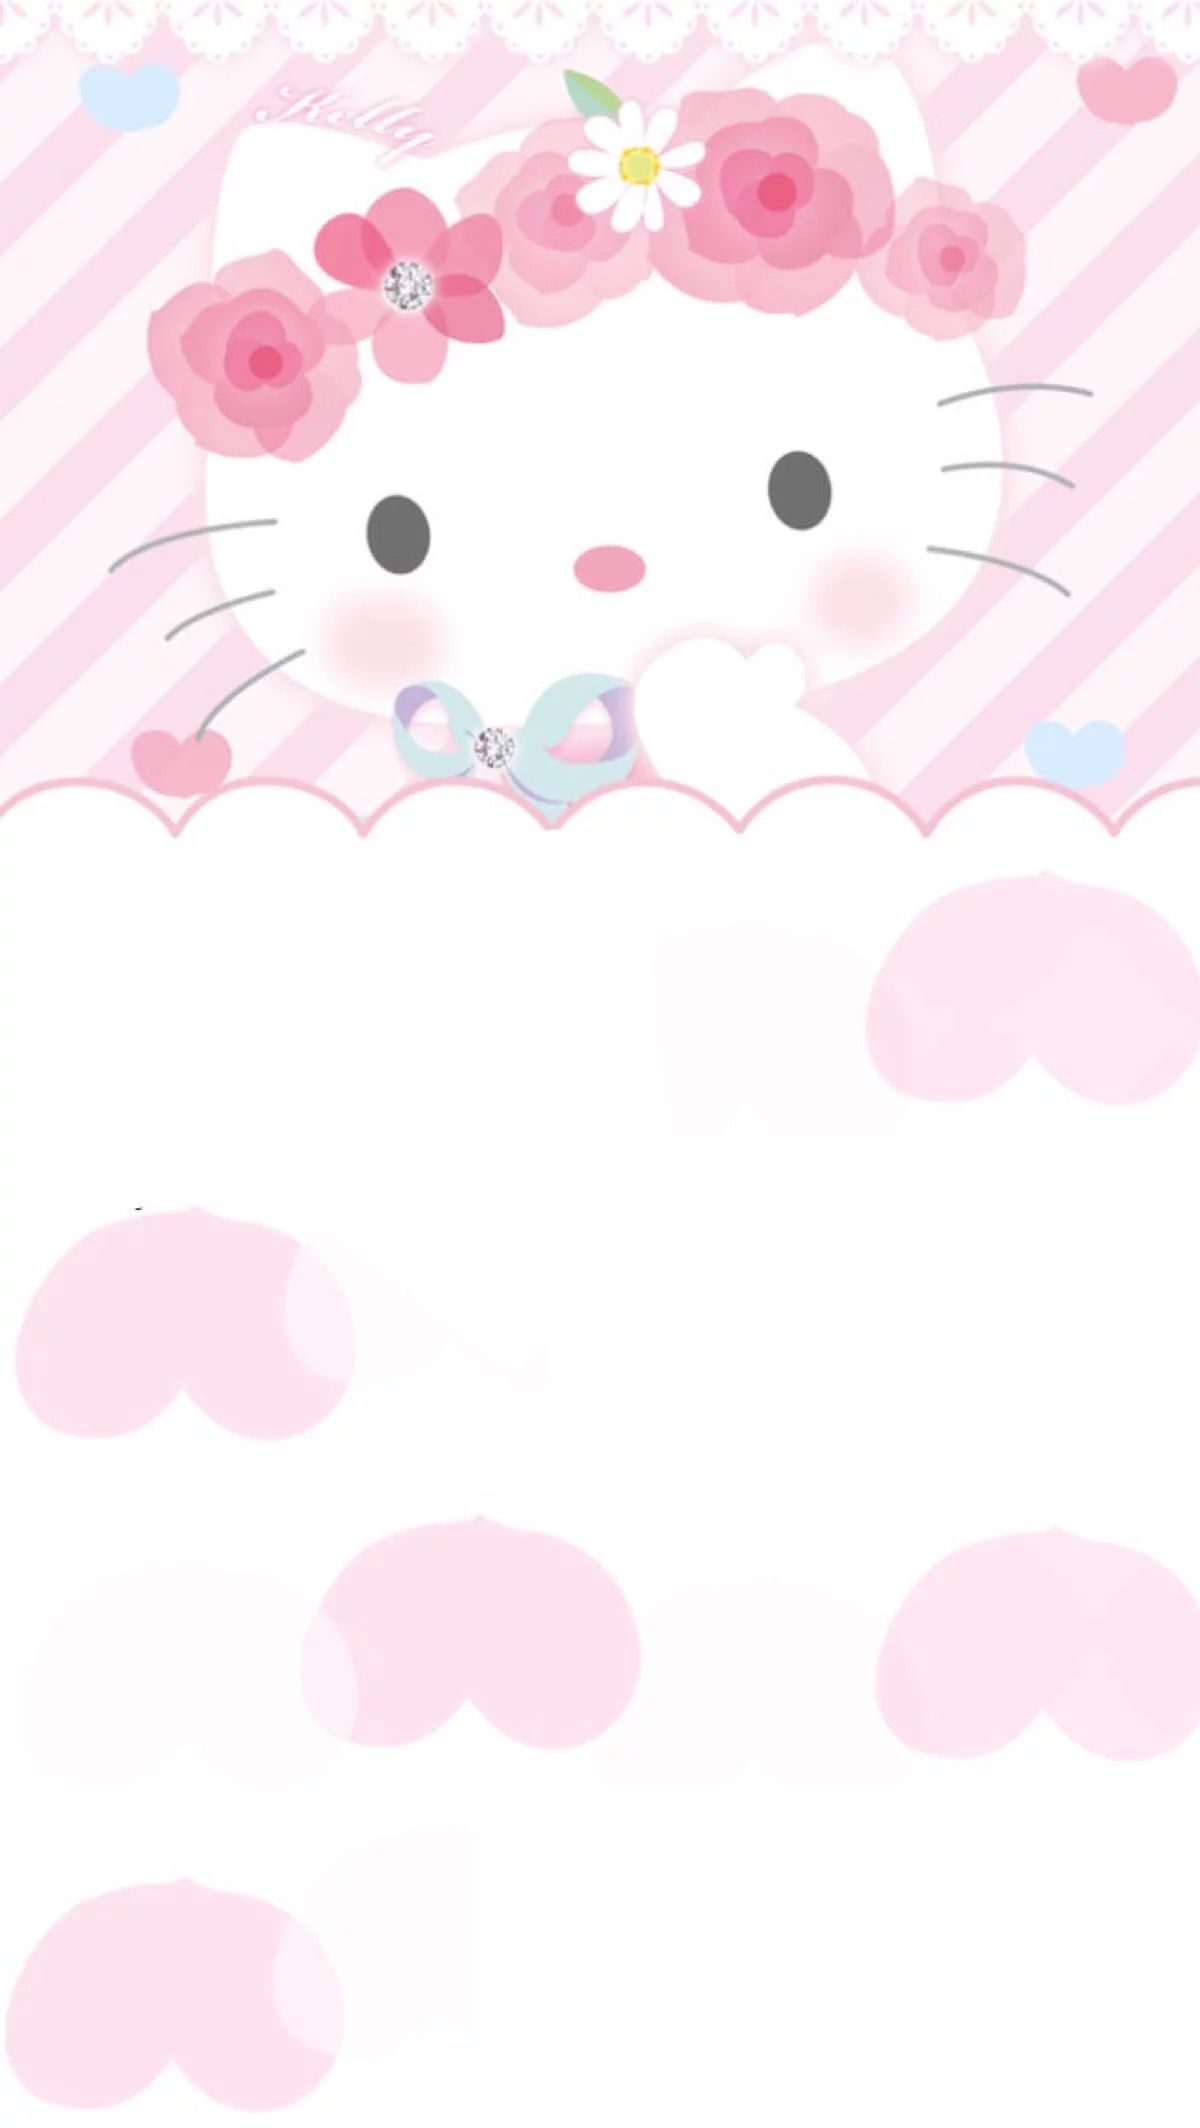 Most Inspiring Wallpaper Hello Kitty Huawei - c710d6dadadfa011cc3d7ee3d1faed2f  Perfect Image Reference_494645.jpg